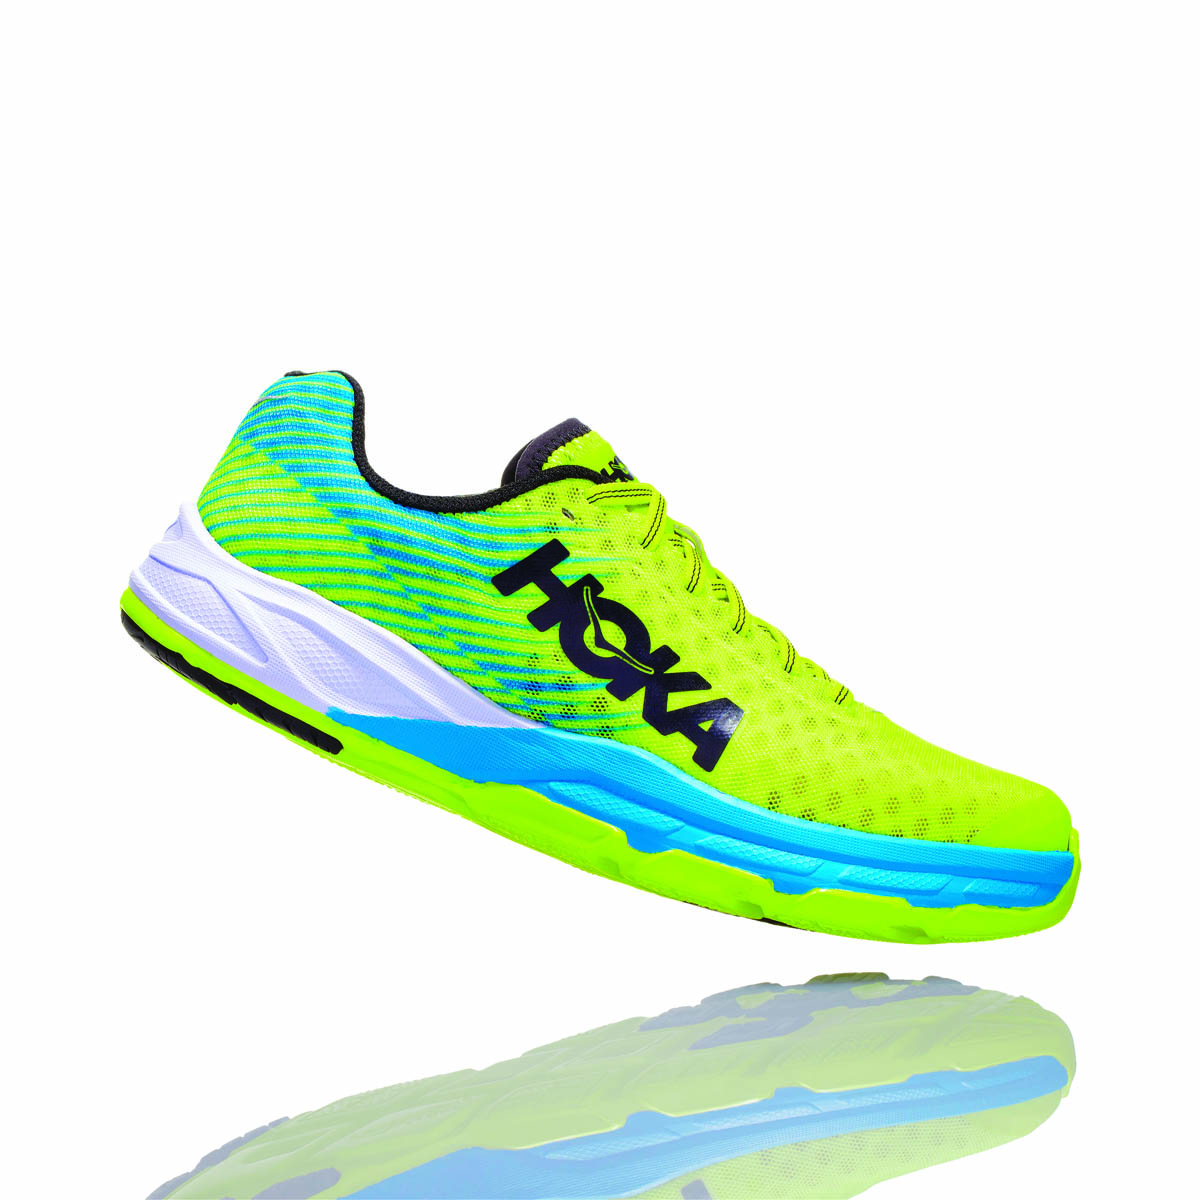 Hoka One One : Le sacre du printemps